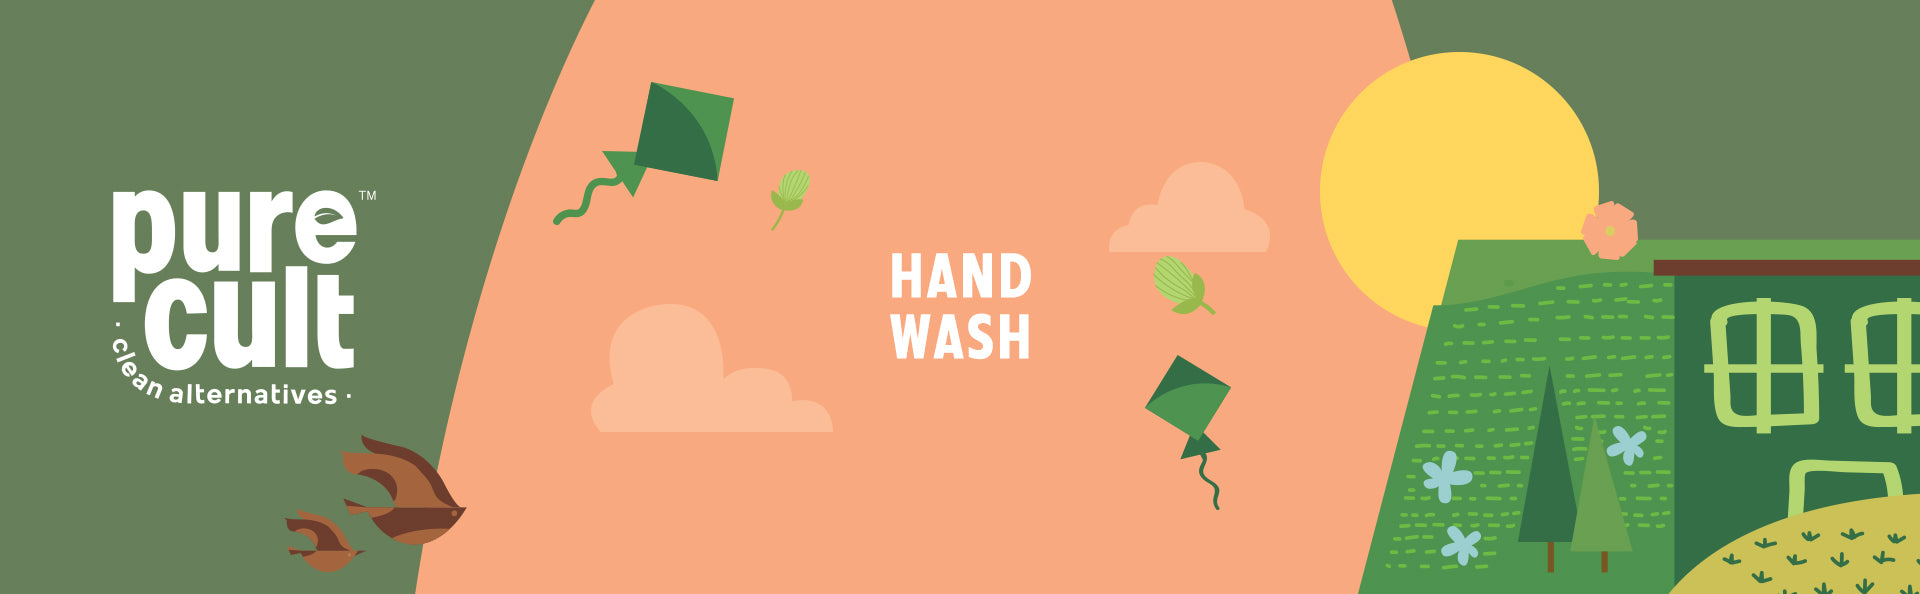 Pure Cult Hand wash